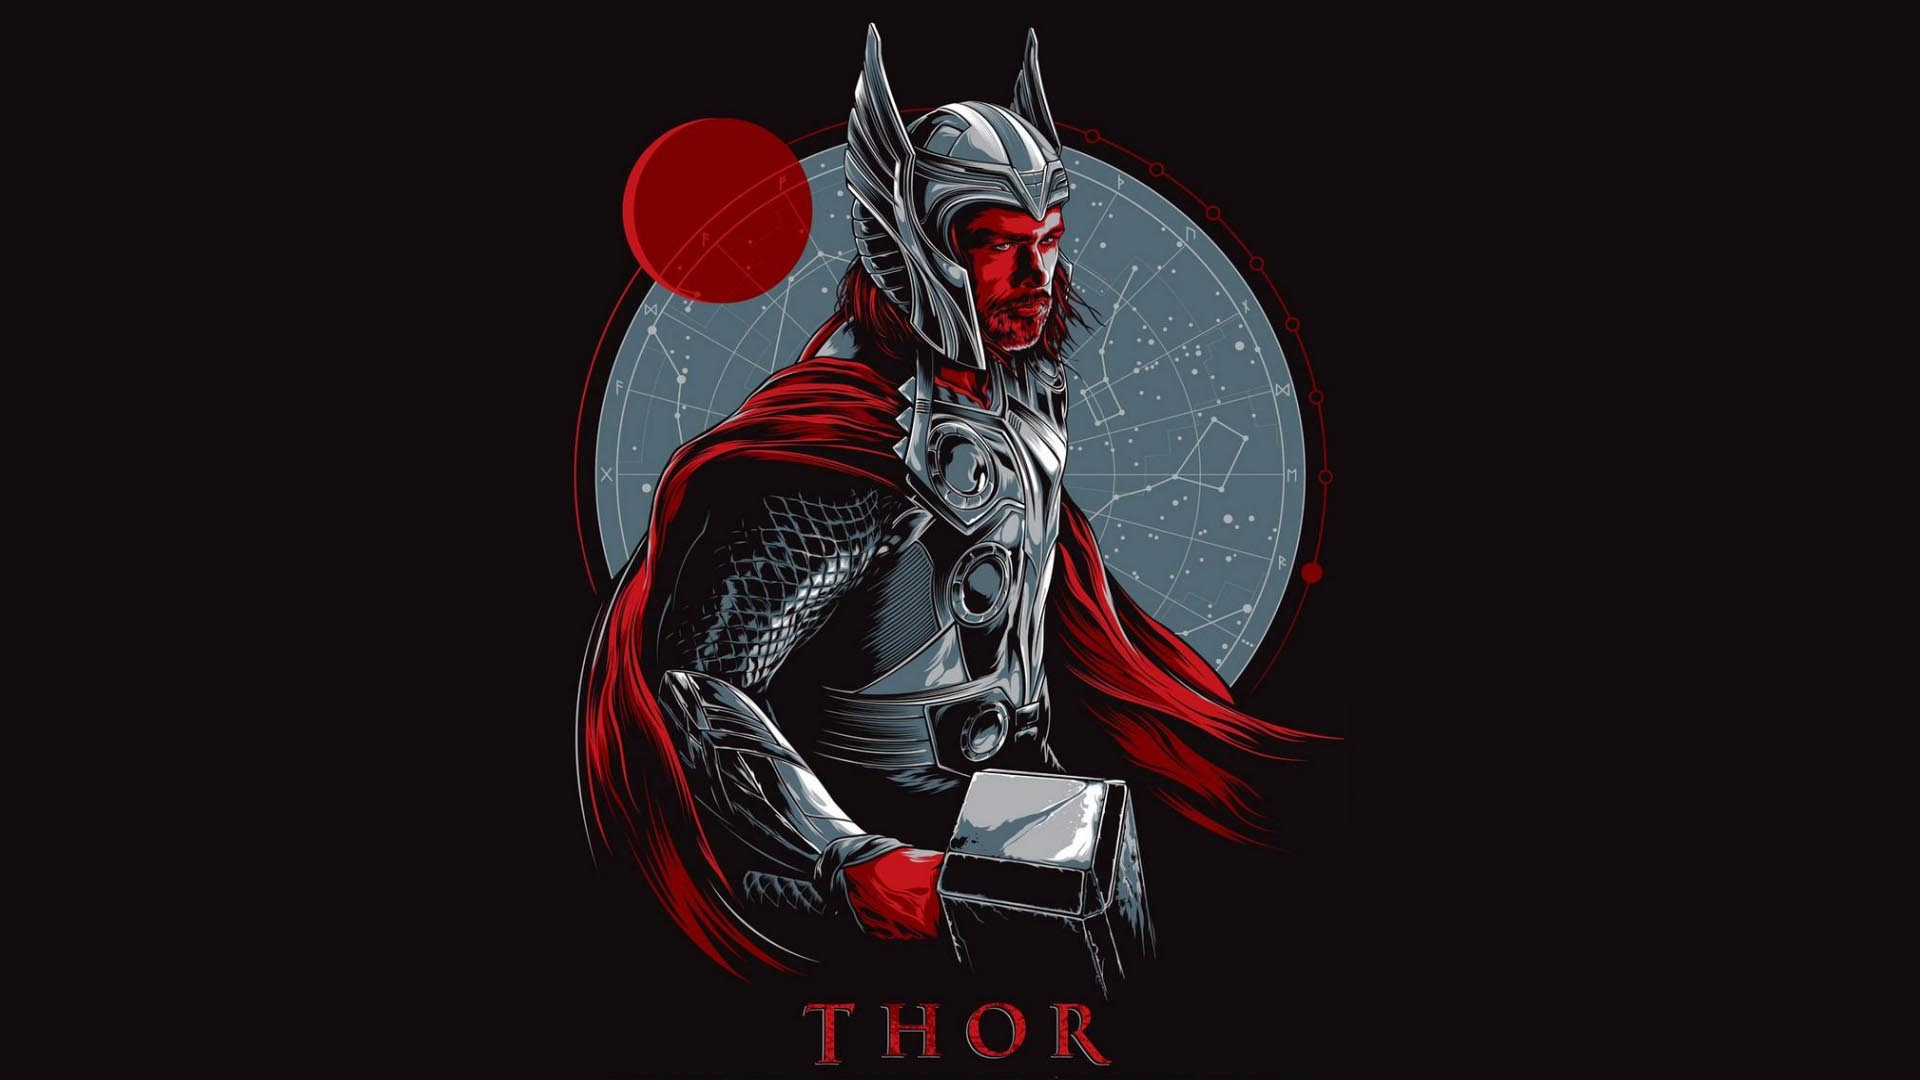 Thor Wallpapers Free Download 1920x1080